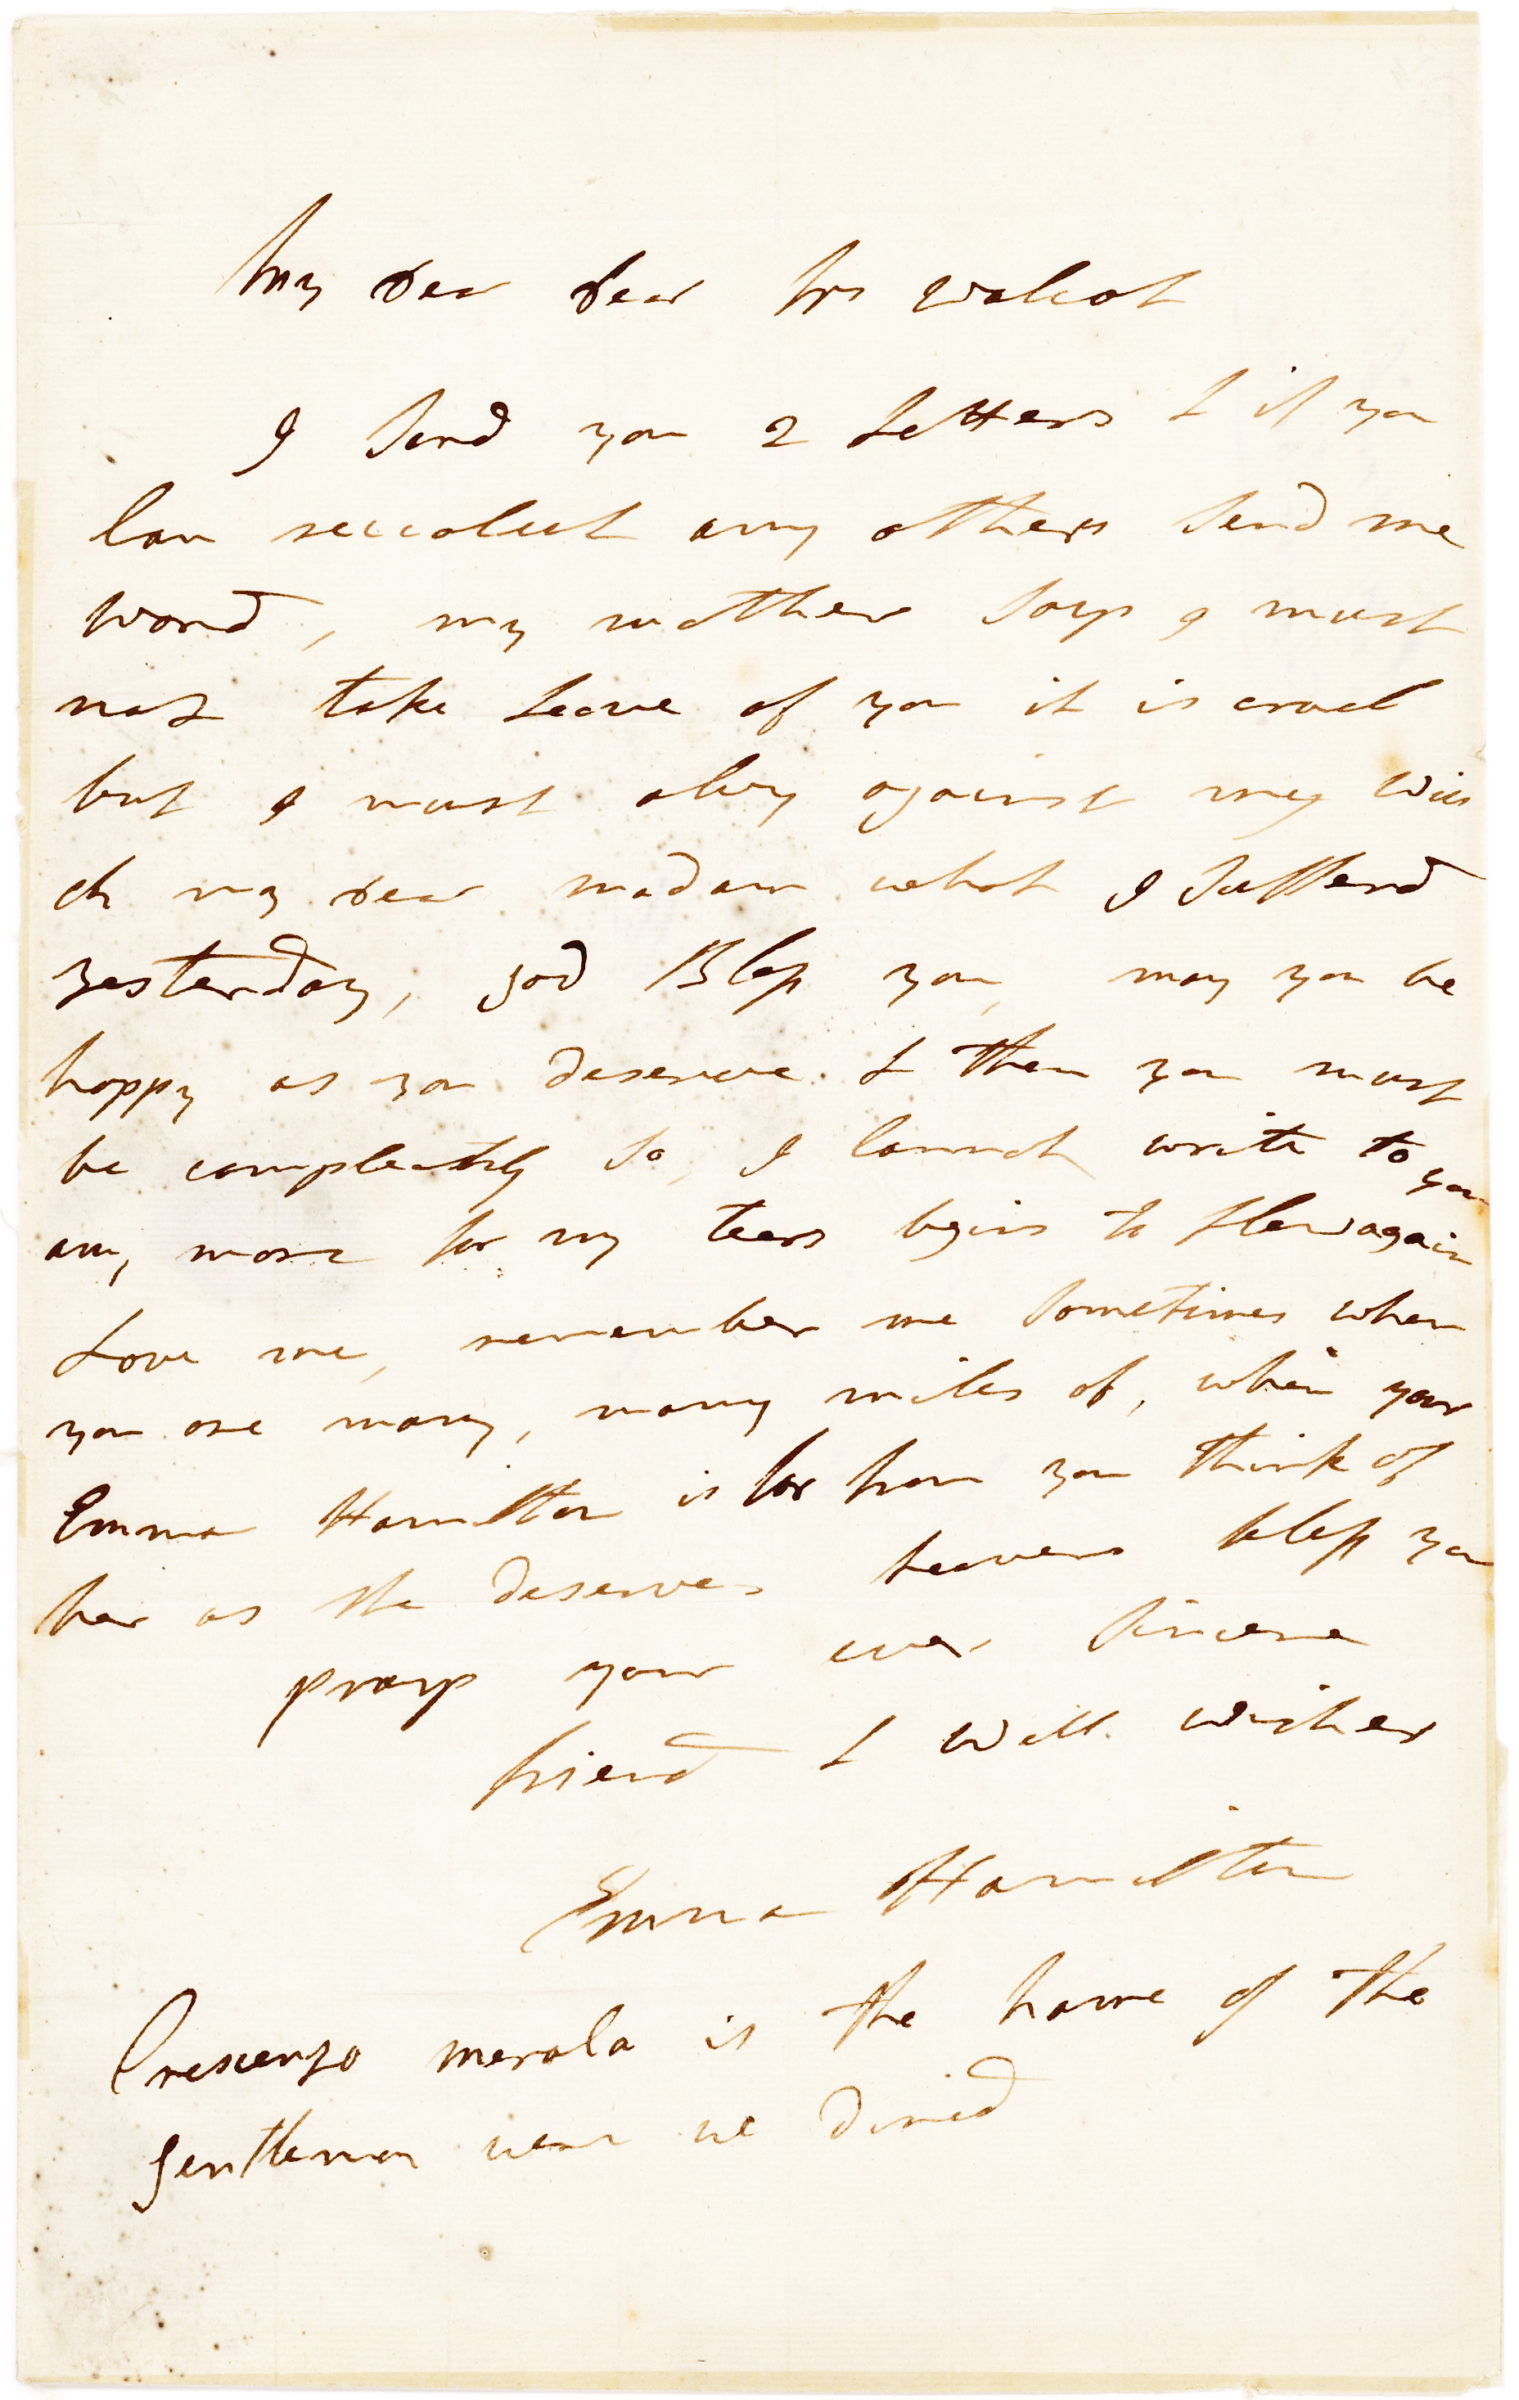 """ALS from Lord Nelson's Mistress: """"…When you are many, many miles off, when your Emma Hamilton is far from you think of her as she deserves"""""""